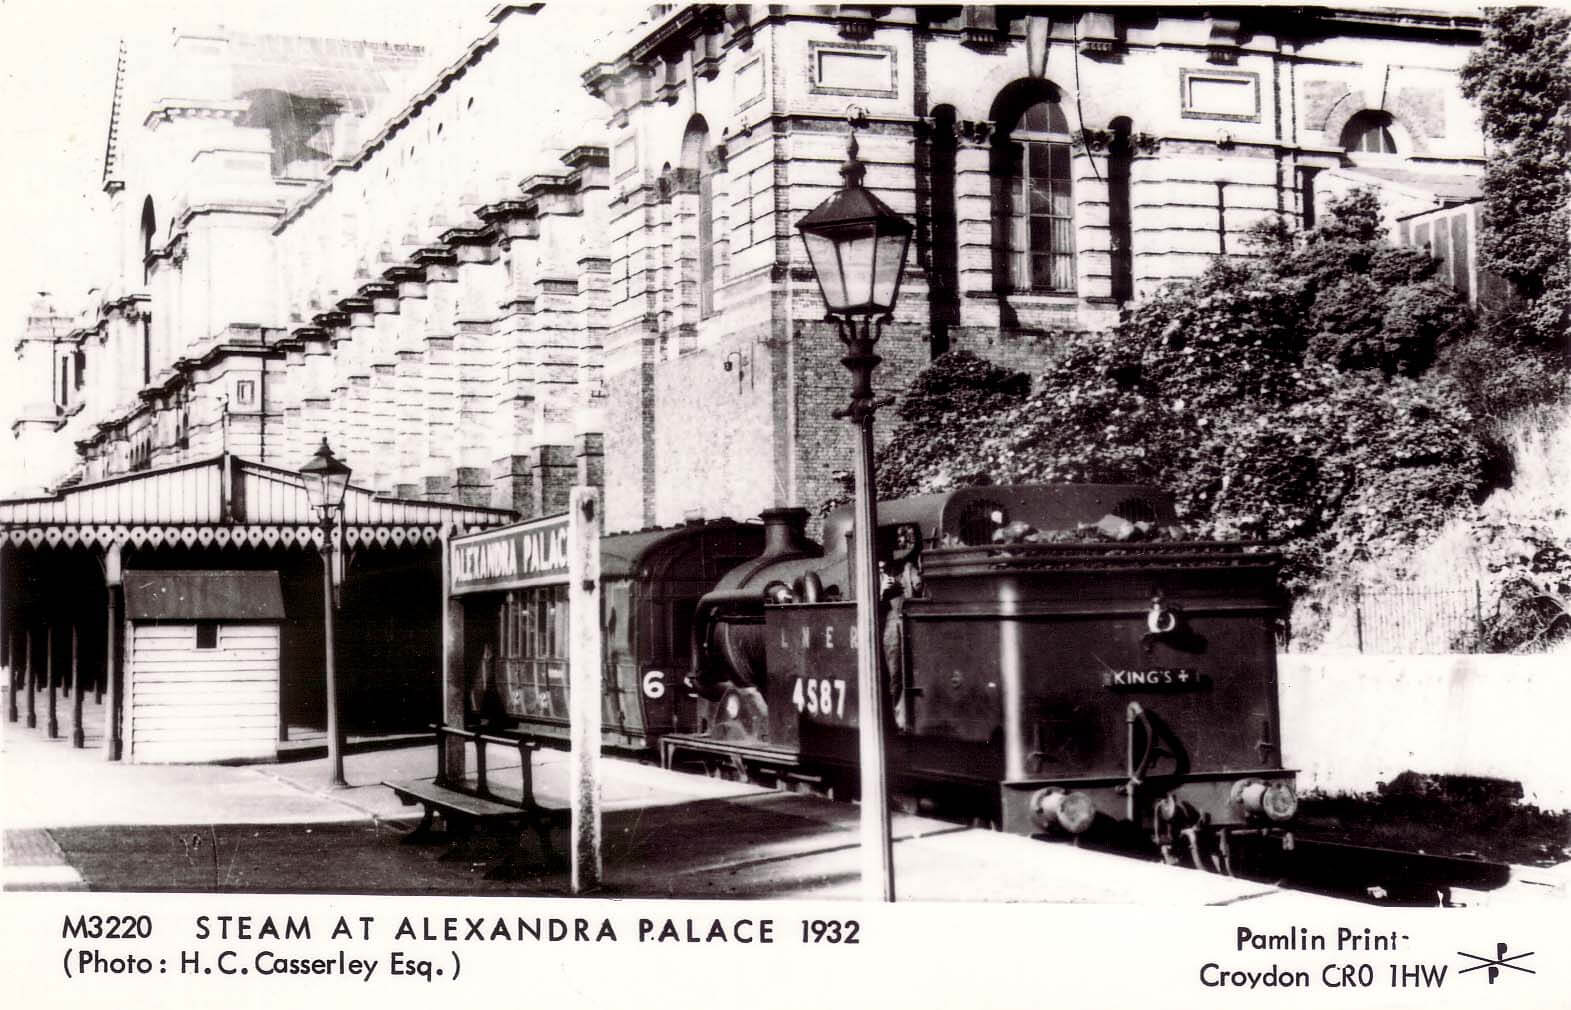 Postcard of Alexandra Palace Station, 1932